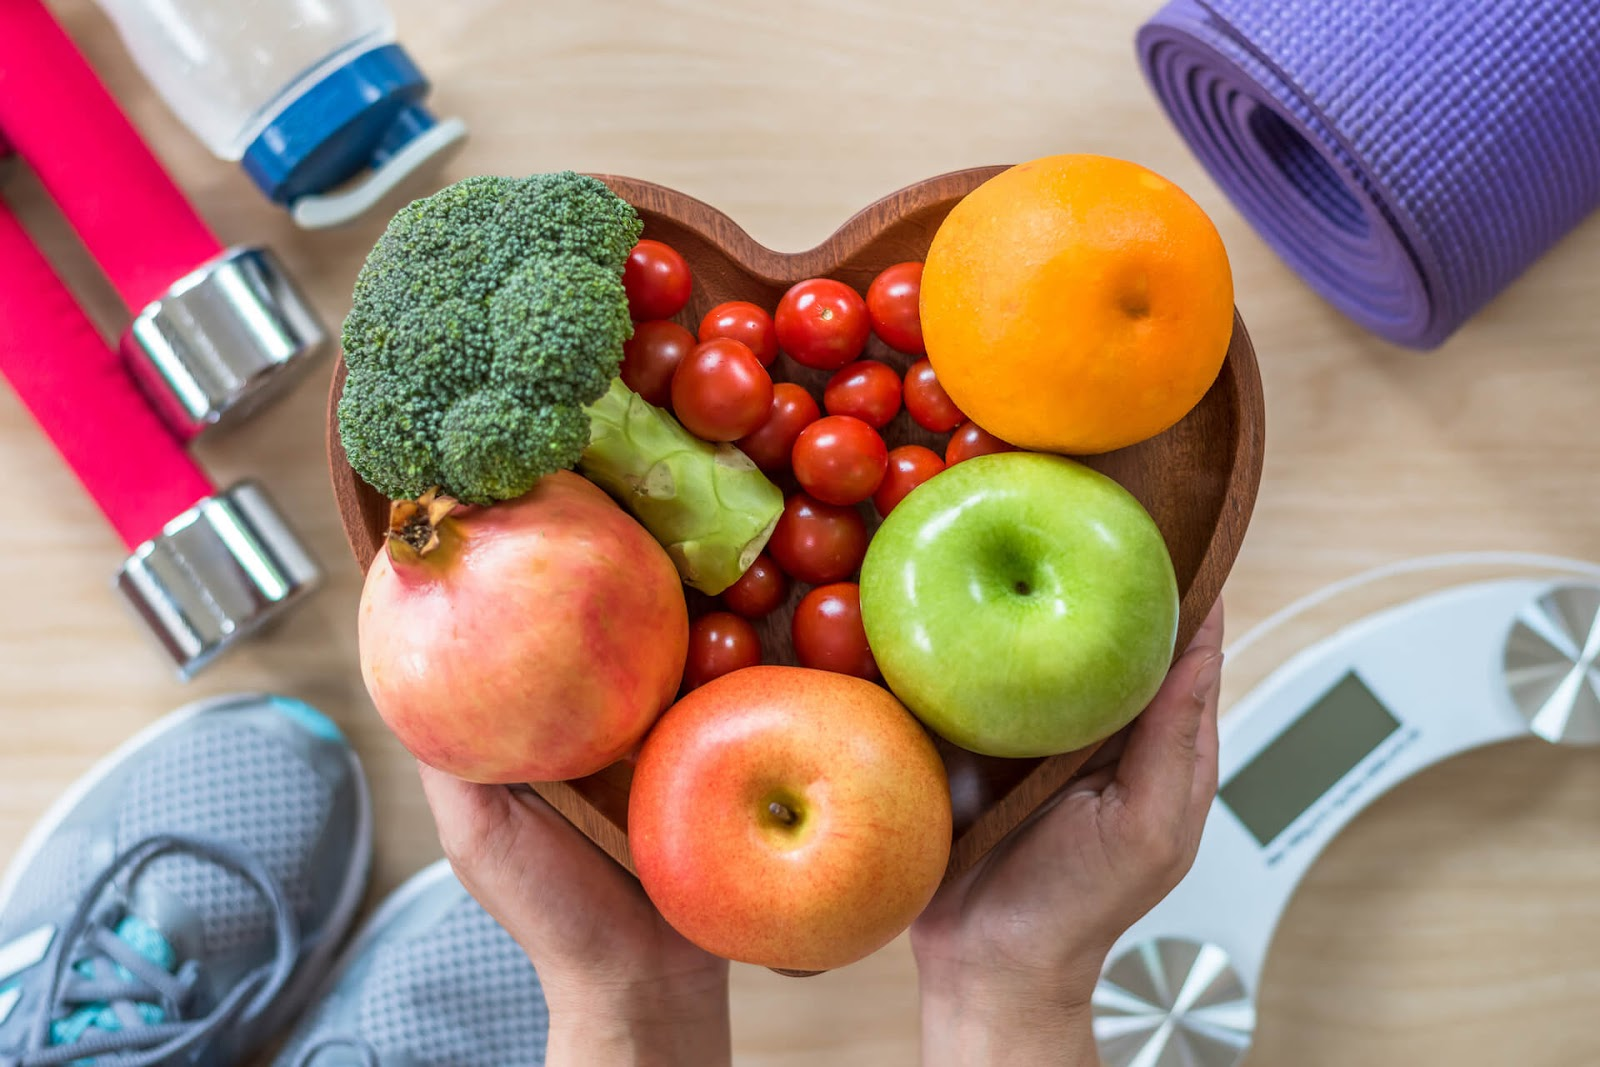 heart shaped bowl of fruits and veggies